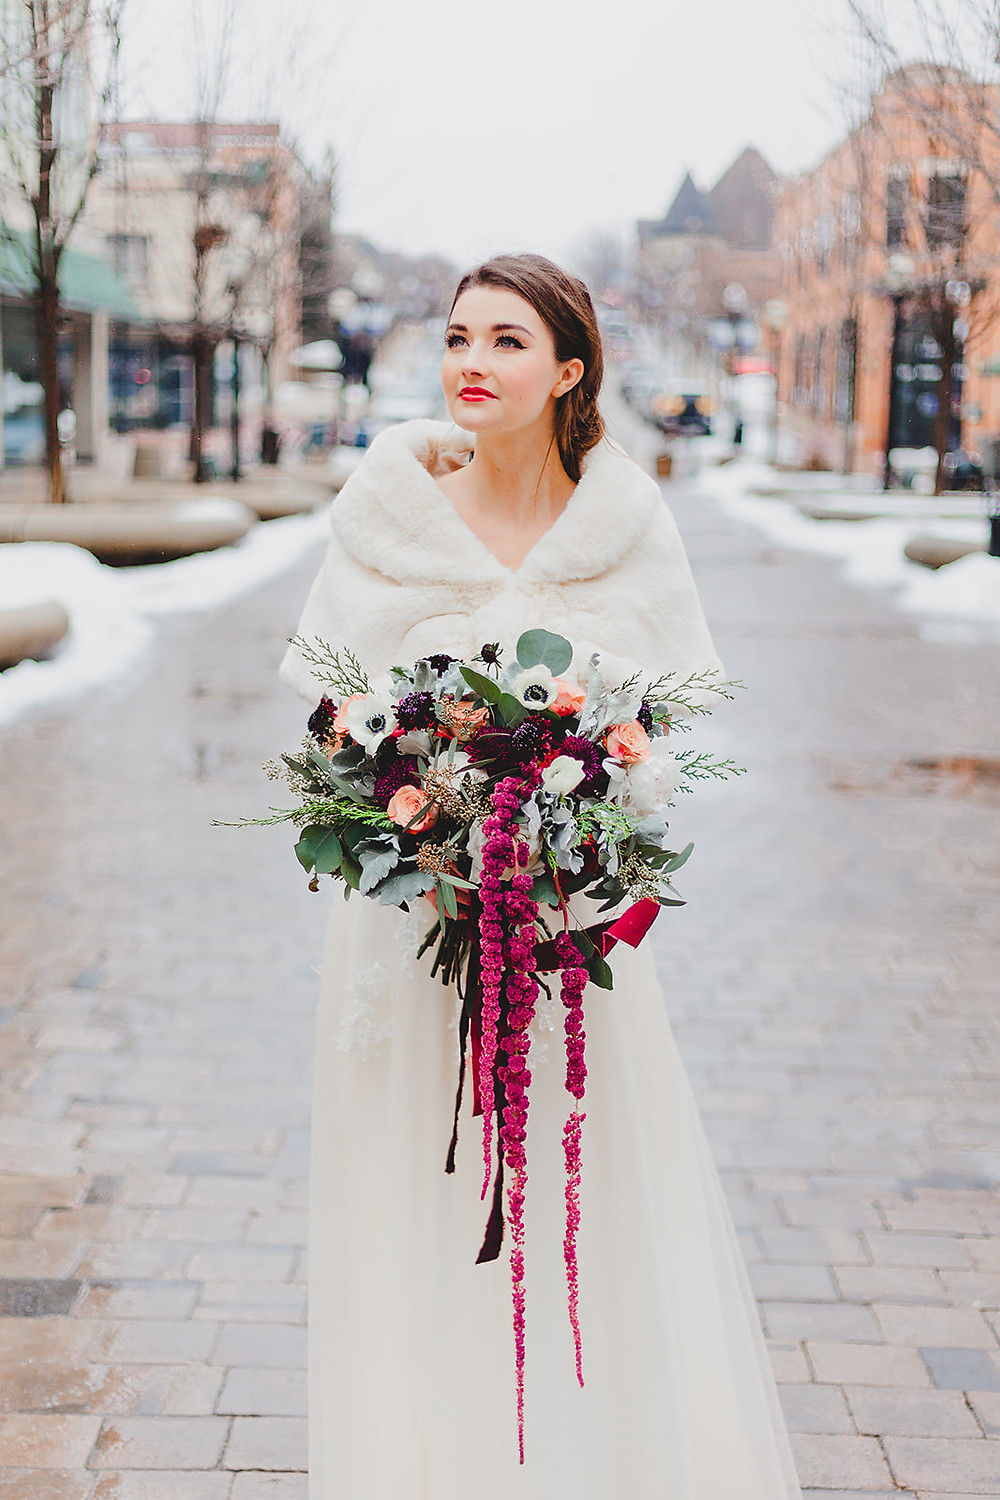 Wintry wonderland photo of bride in streetside photo. Photo credit: Kayla Dutcher Photography